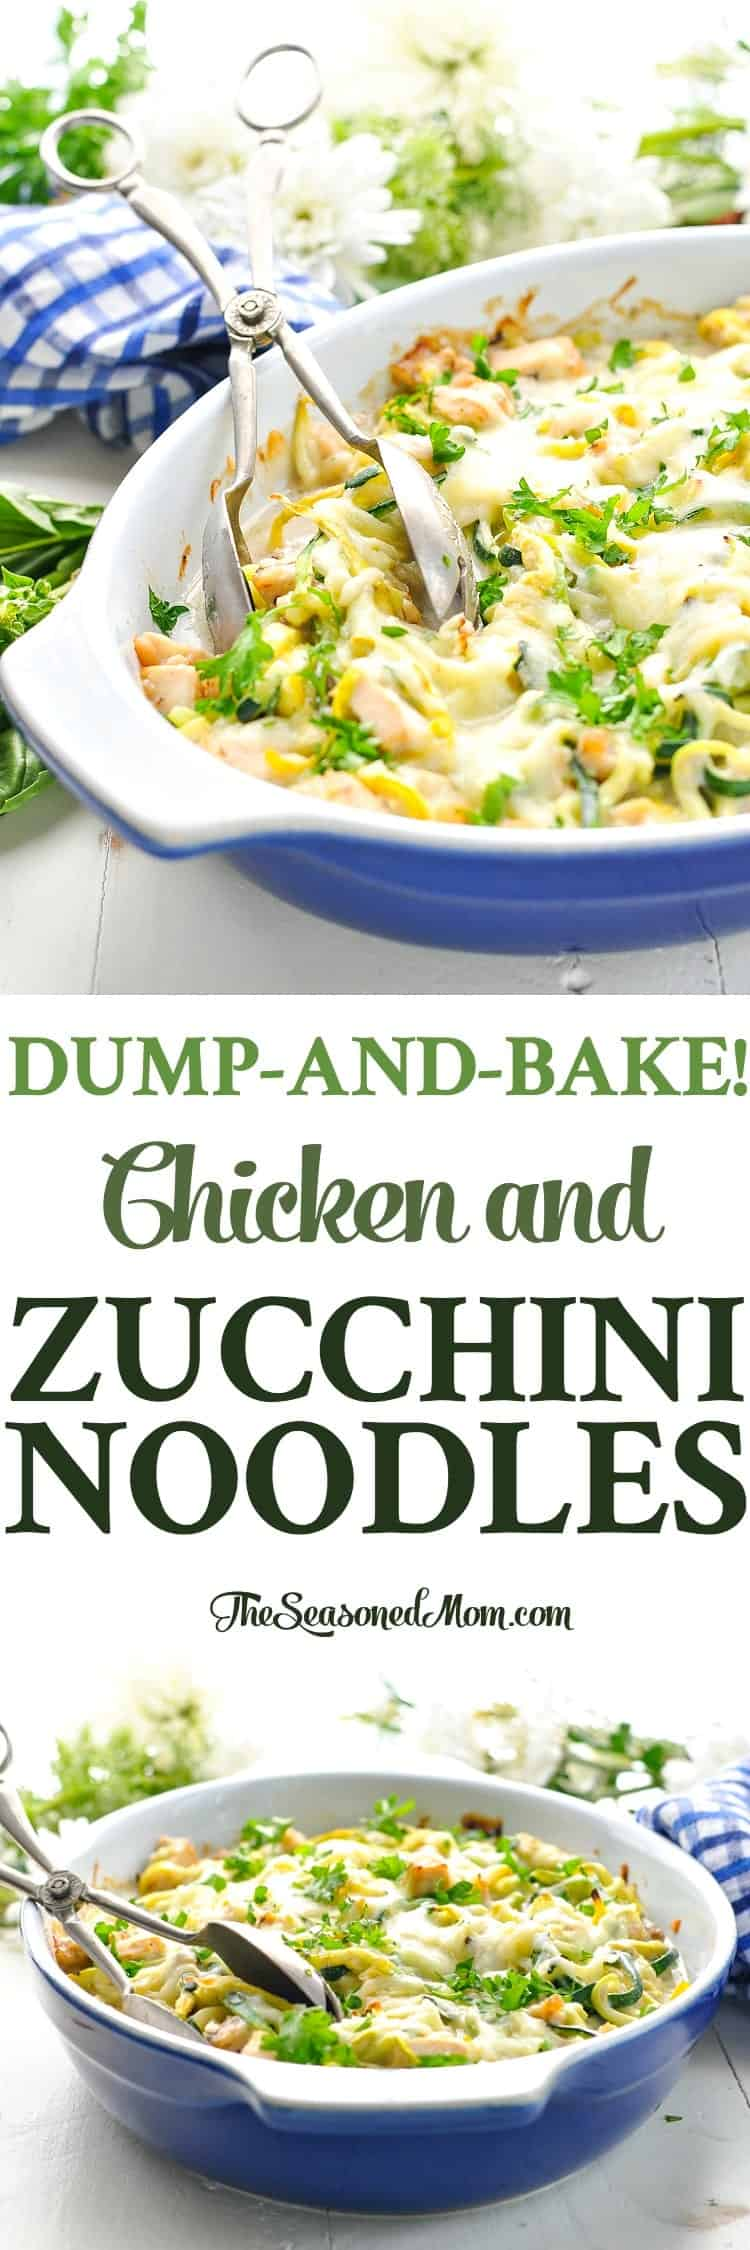 Image of Dump and Bake Chicken and Zucchini Noodles